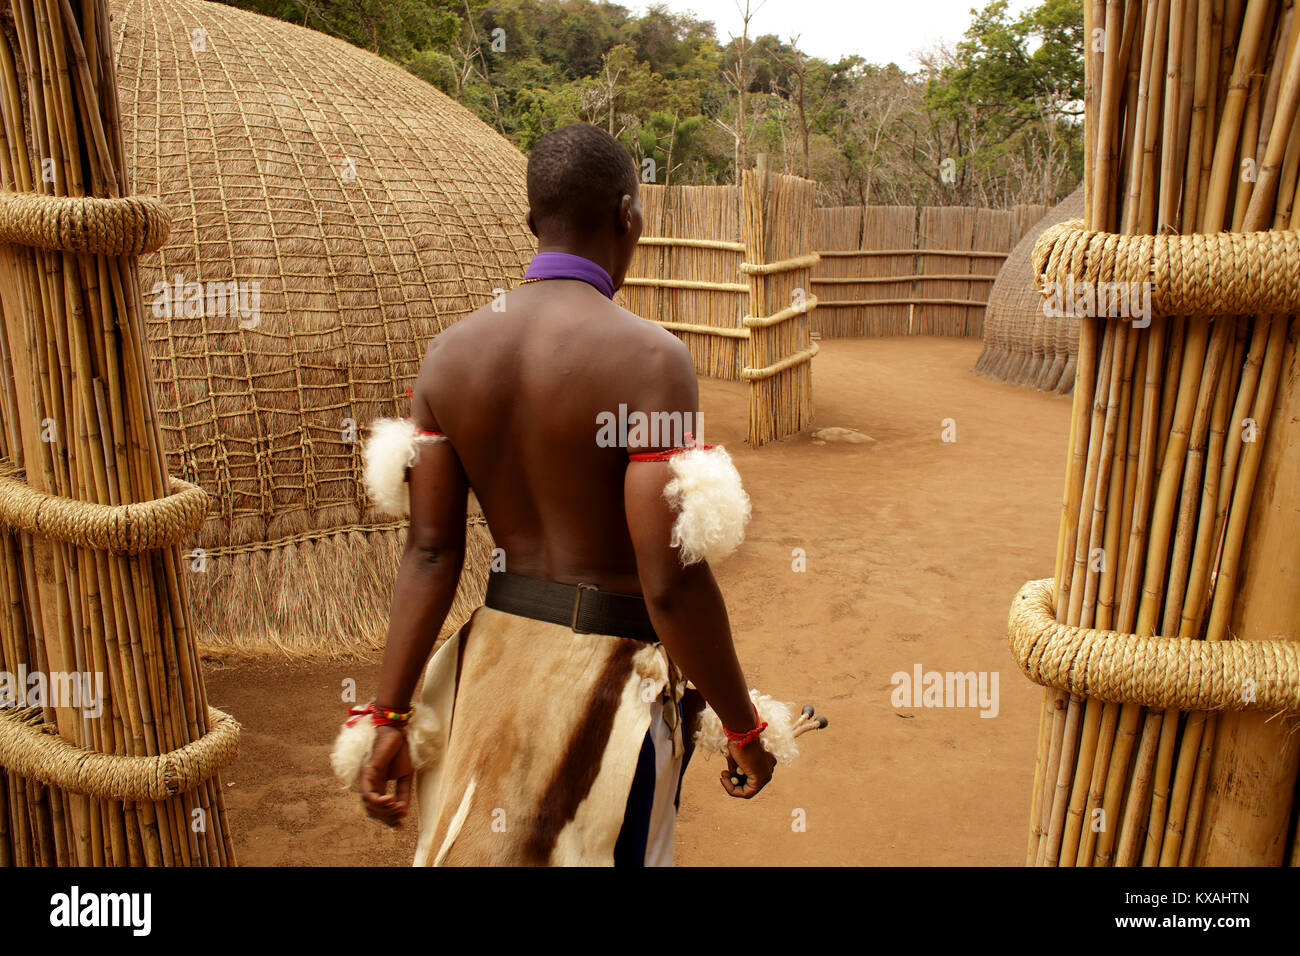 Native wearing traditional clothing walking across primitive village, Swaziland - Stock Image